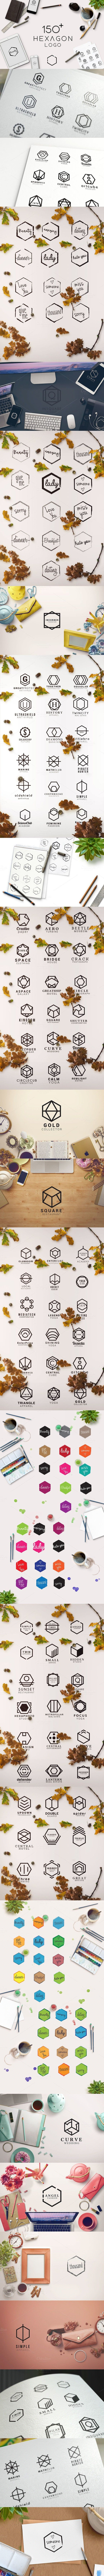 520 best logos business cards graphic design branding images on